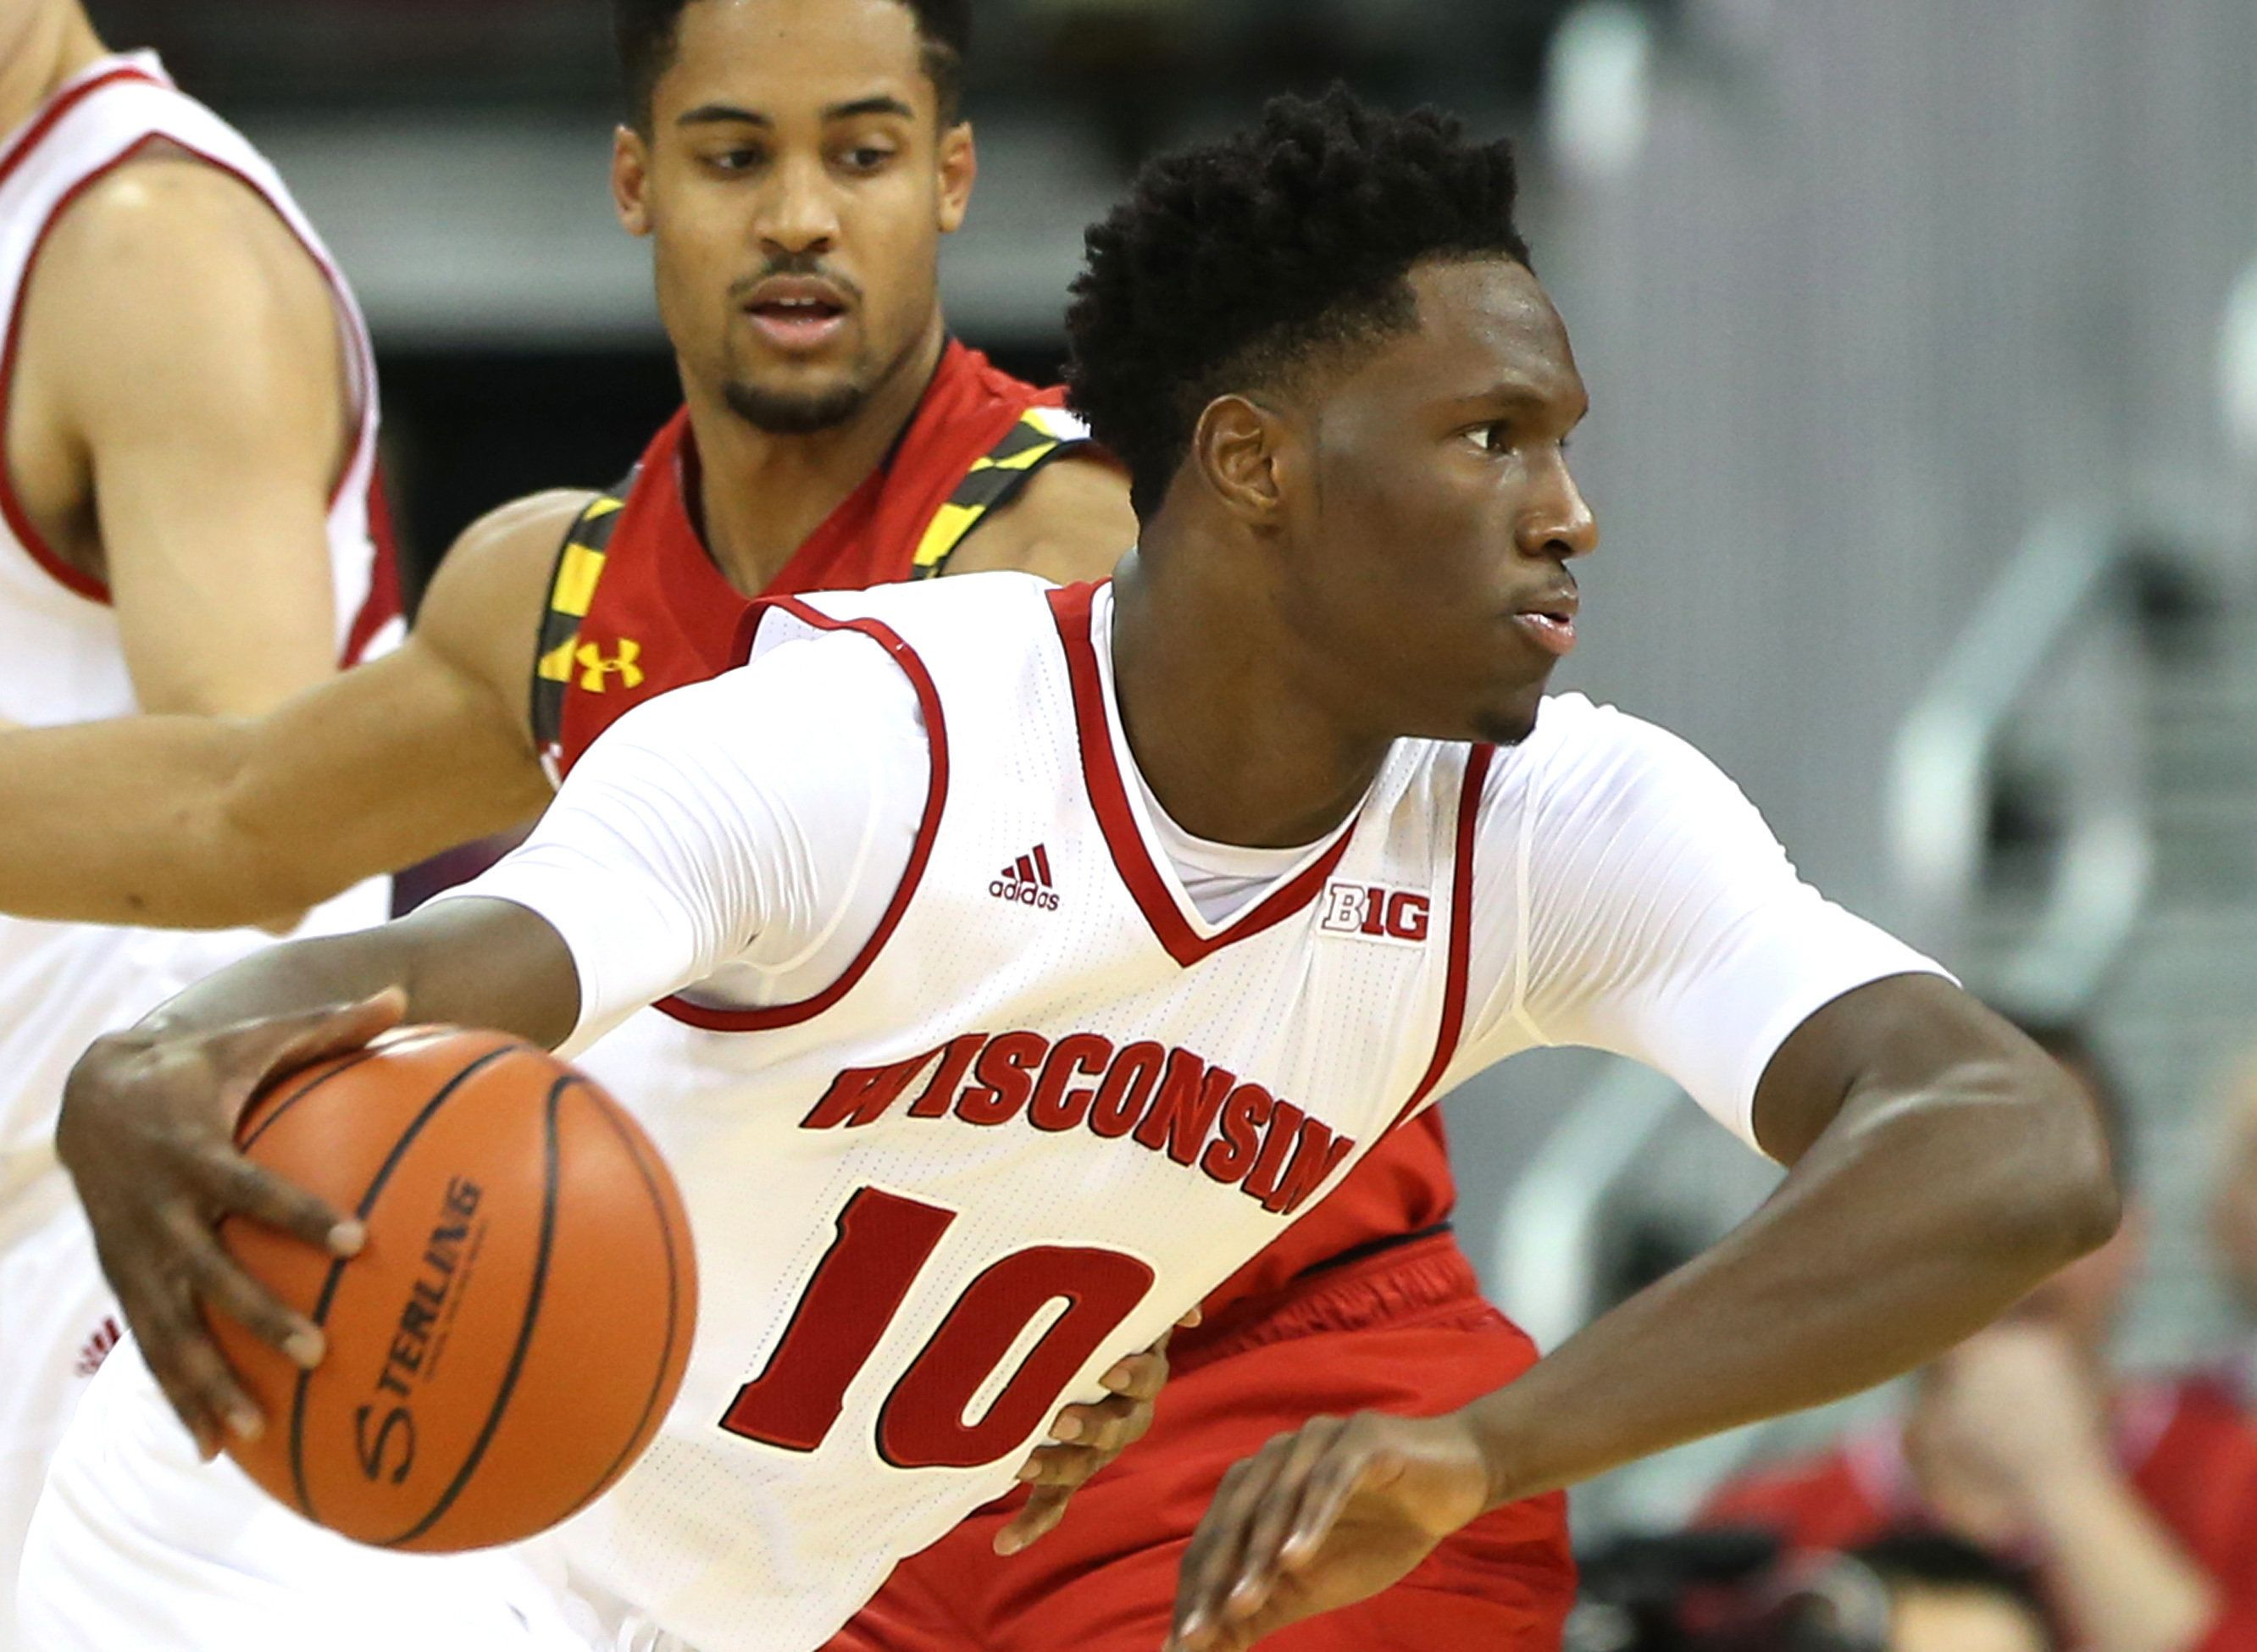 Jan 9, 2016; Madison, WI, USA; Wisconsin Badgers forward Nigel Hayes (10) drives the ball against Maryland Terrapins guard Melo Trimble (rear) at the Kohl Center. Maryland defeated Wisconsin 63-60. Mandatory Credit: Mary Langenfeld-USA TODAY Sports